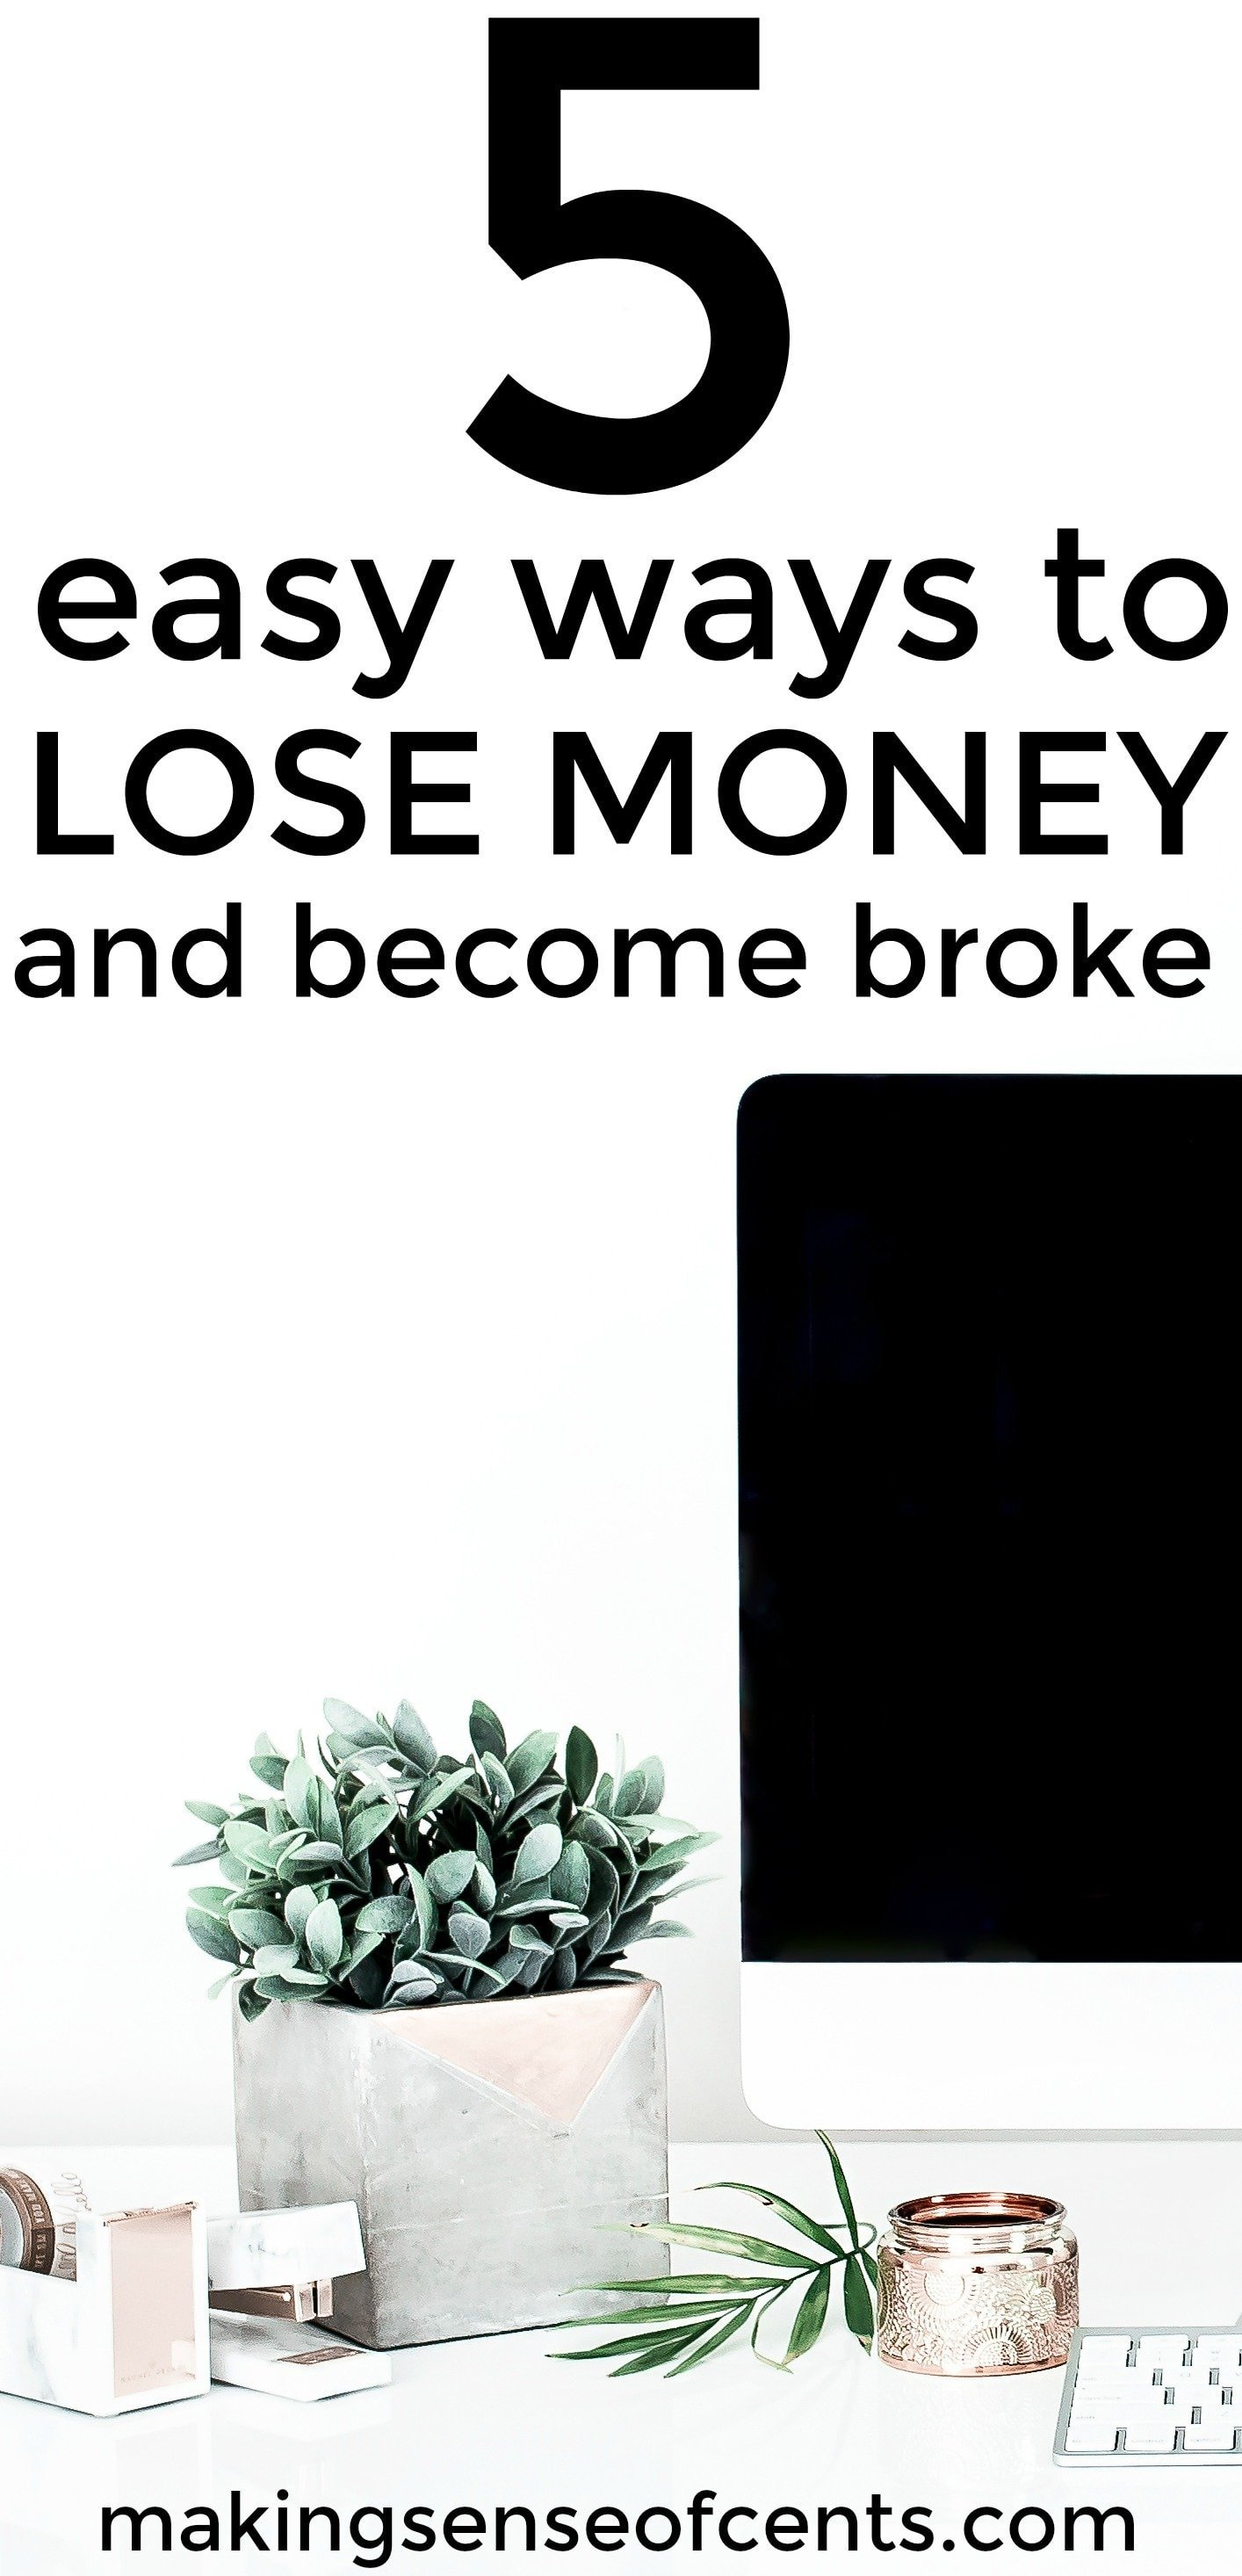 Check out this list of easy ways to lose money and become broke.